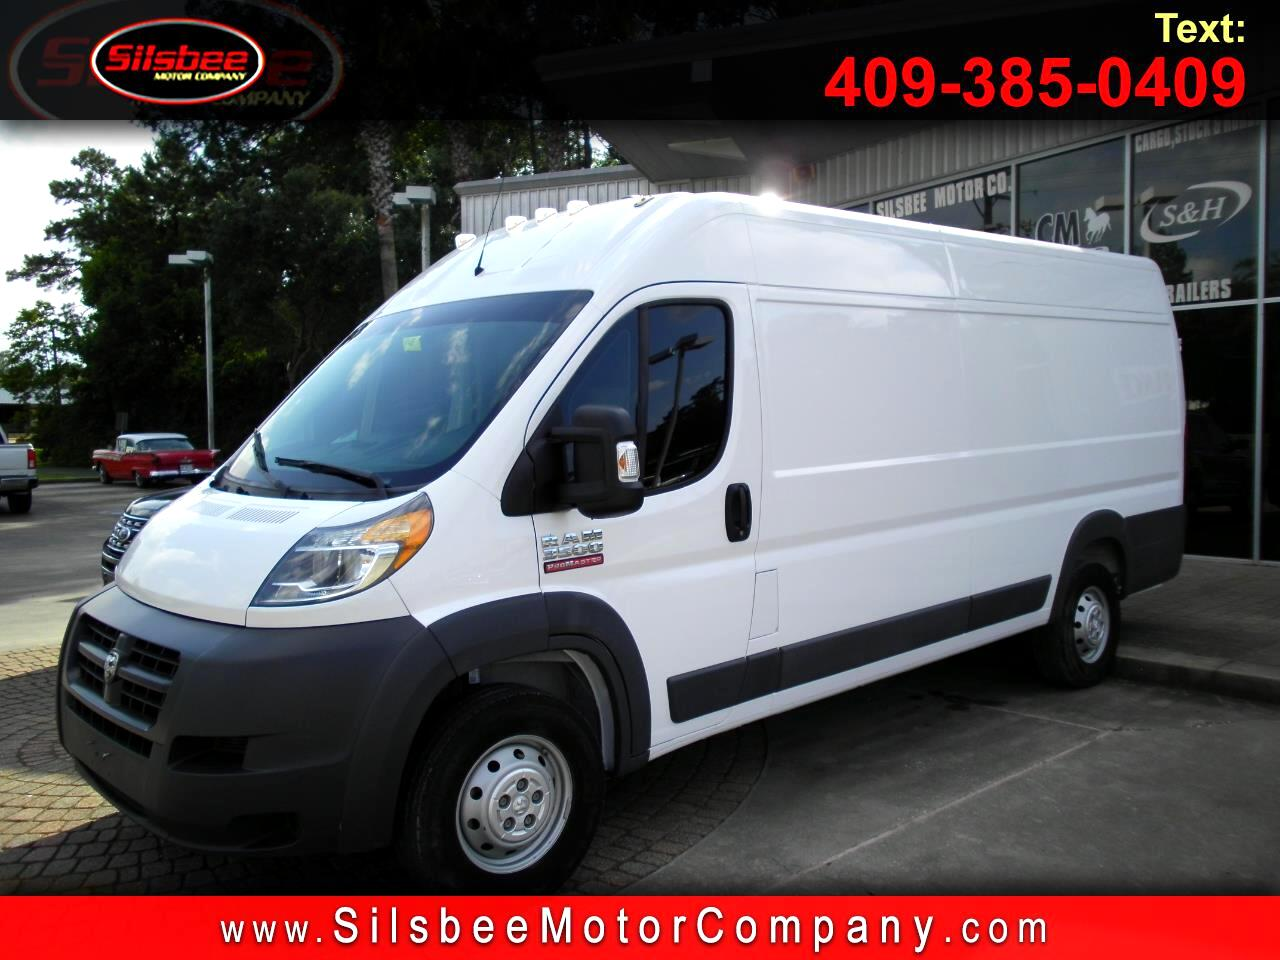 2017 RAM ProMaster Cargo Van 3500 High Roof 159